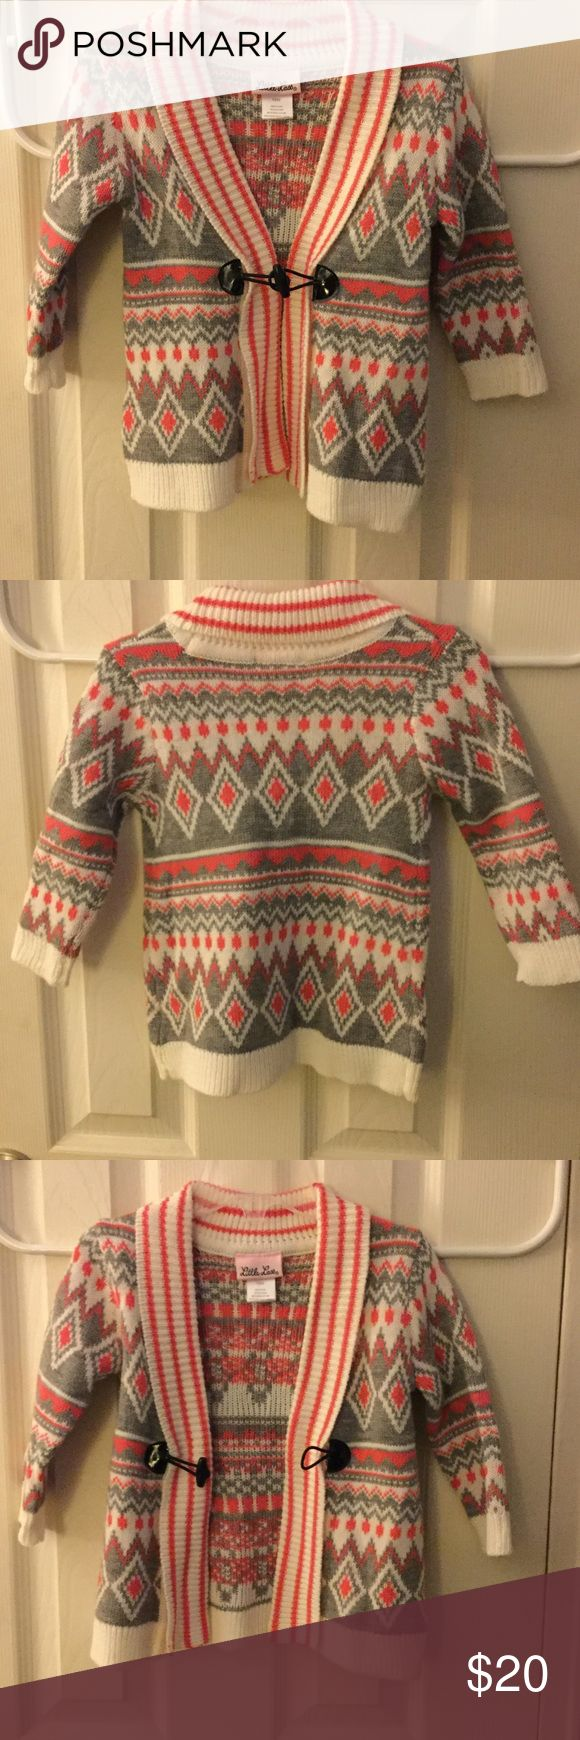 Baby girls sweater Baby girls open sweater with one fancy button Shirts & Tops Sweaters #babygirlsweaters